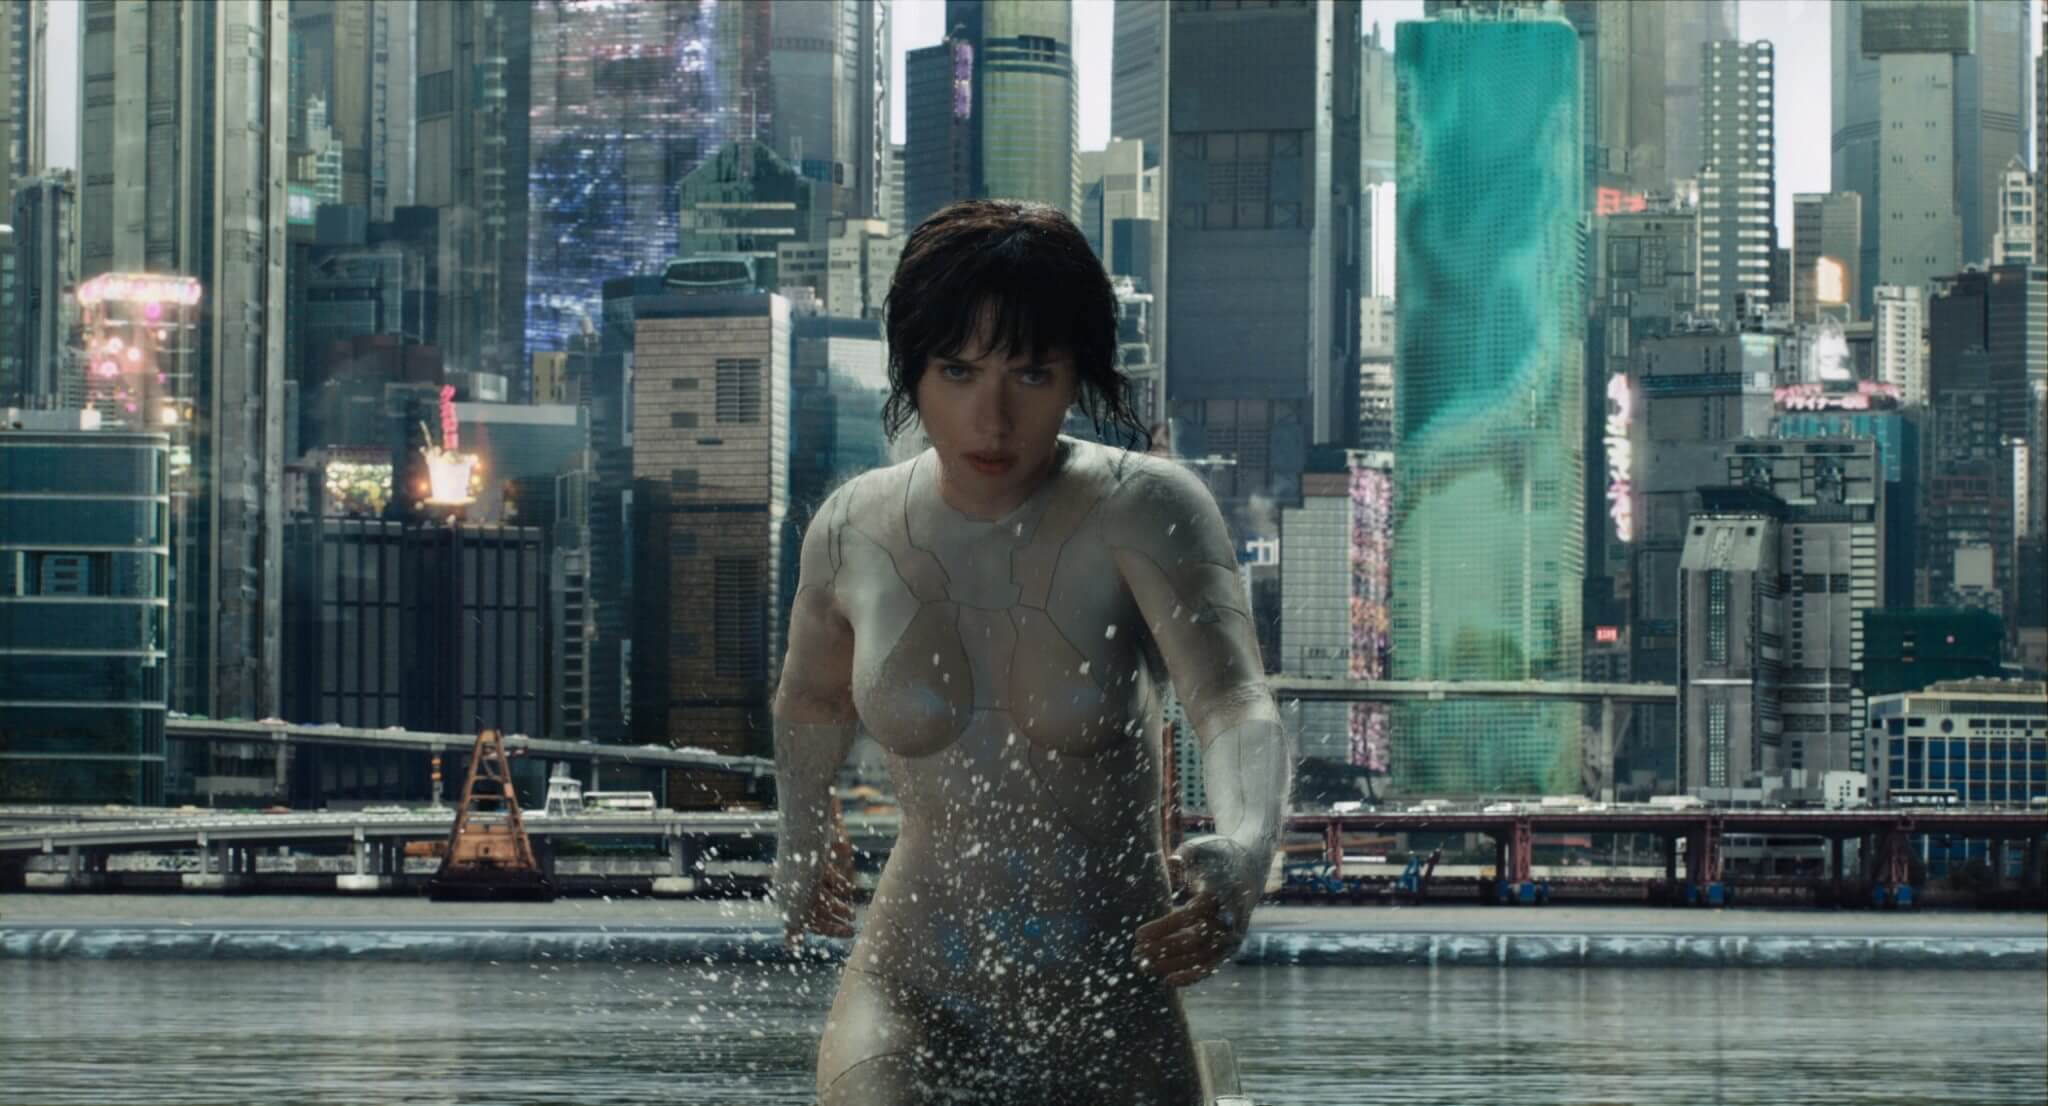 Ghost in the shell critica